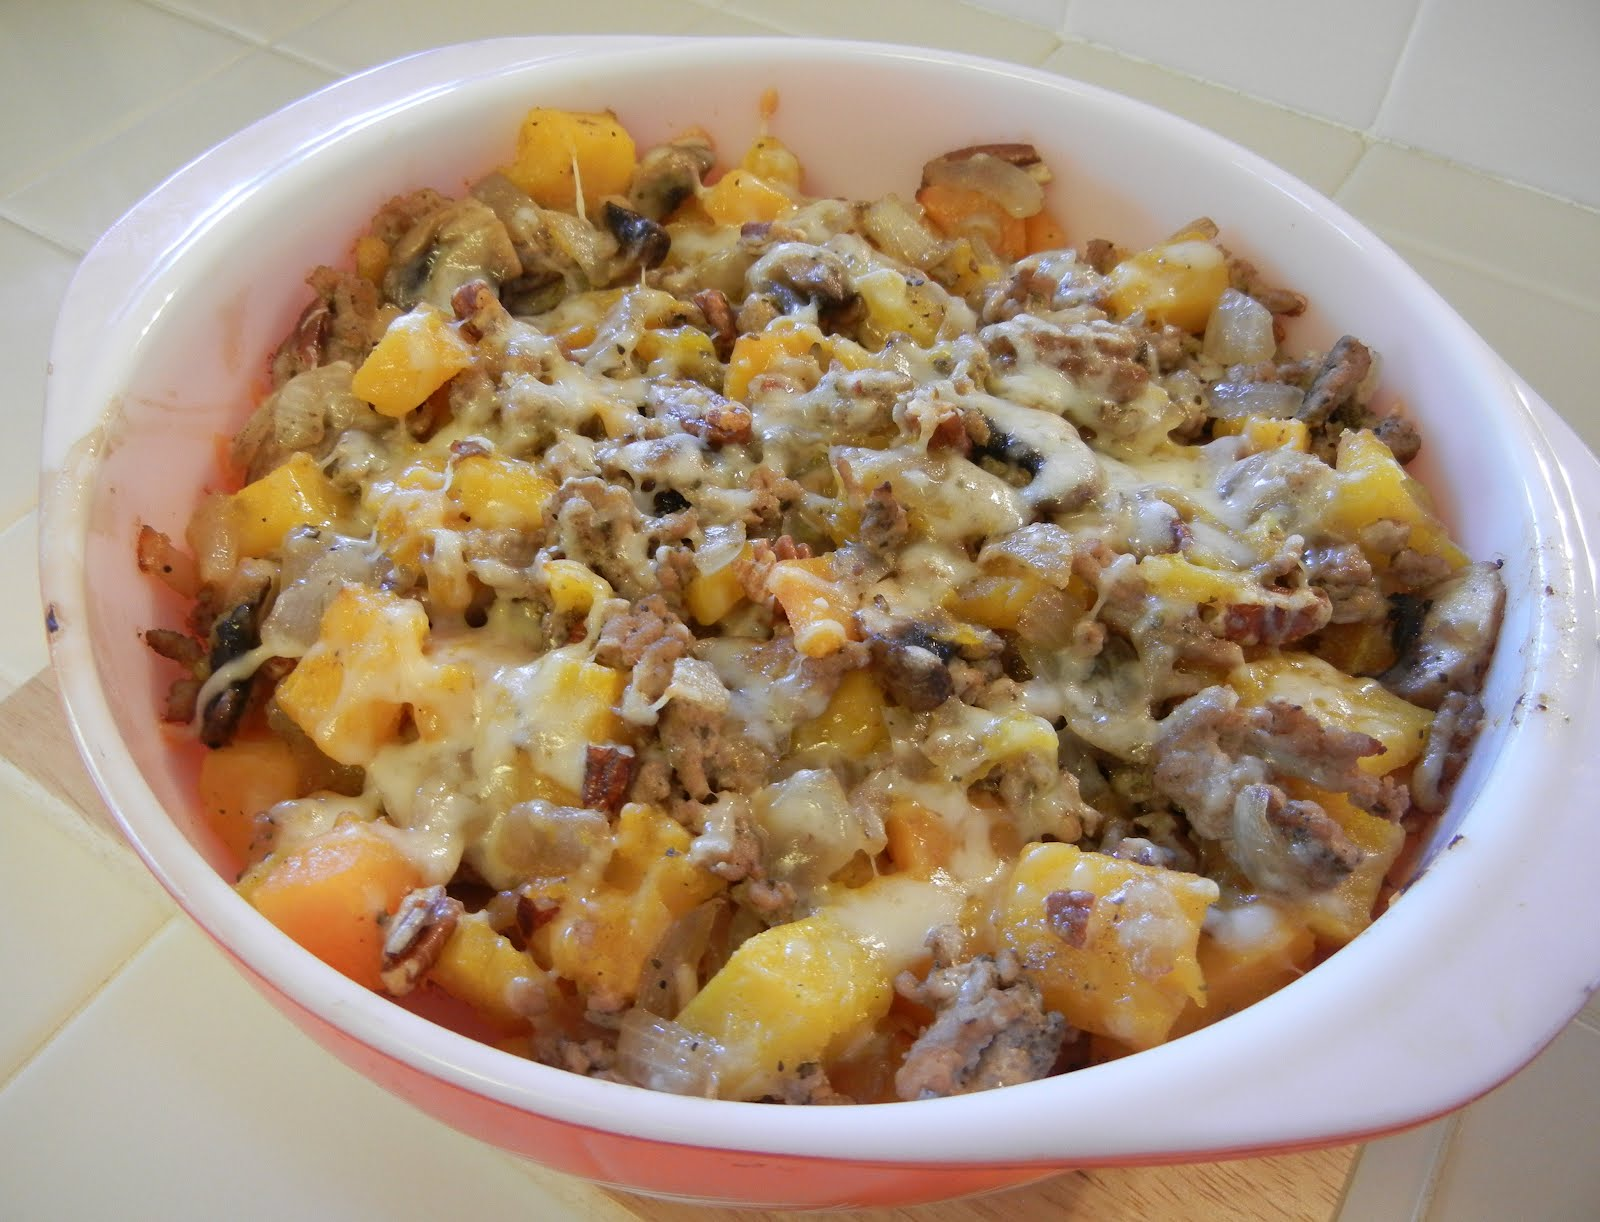 Crock Pot paleo Breakfast Casserole